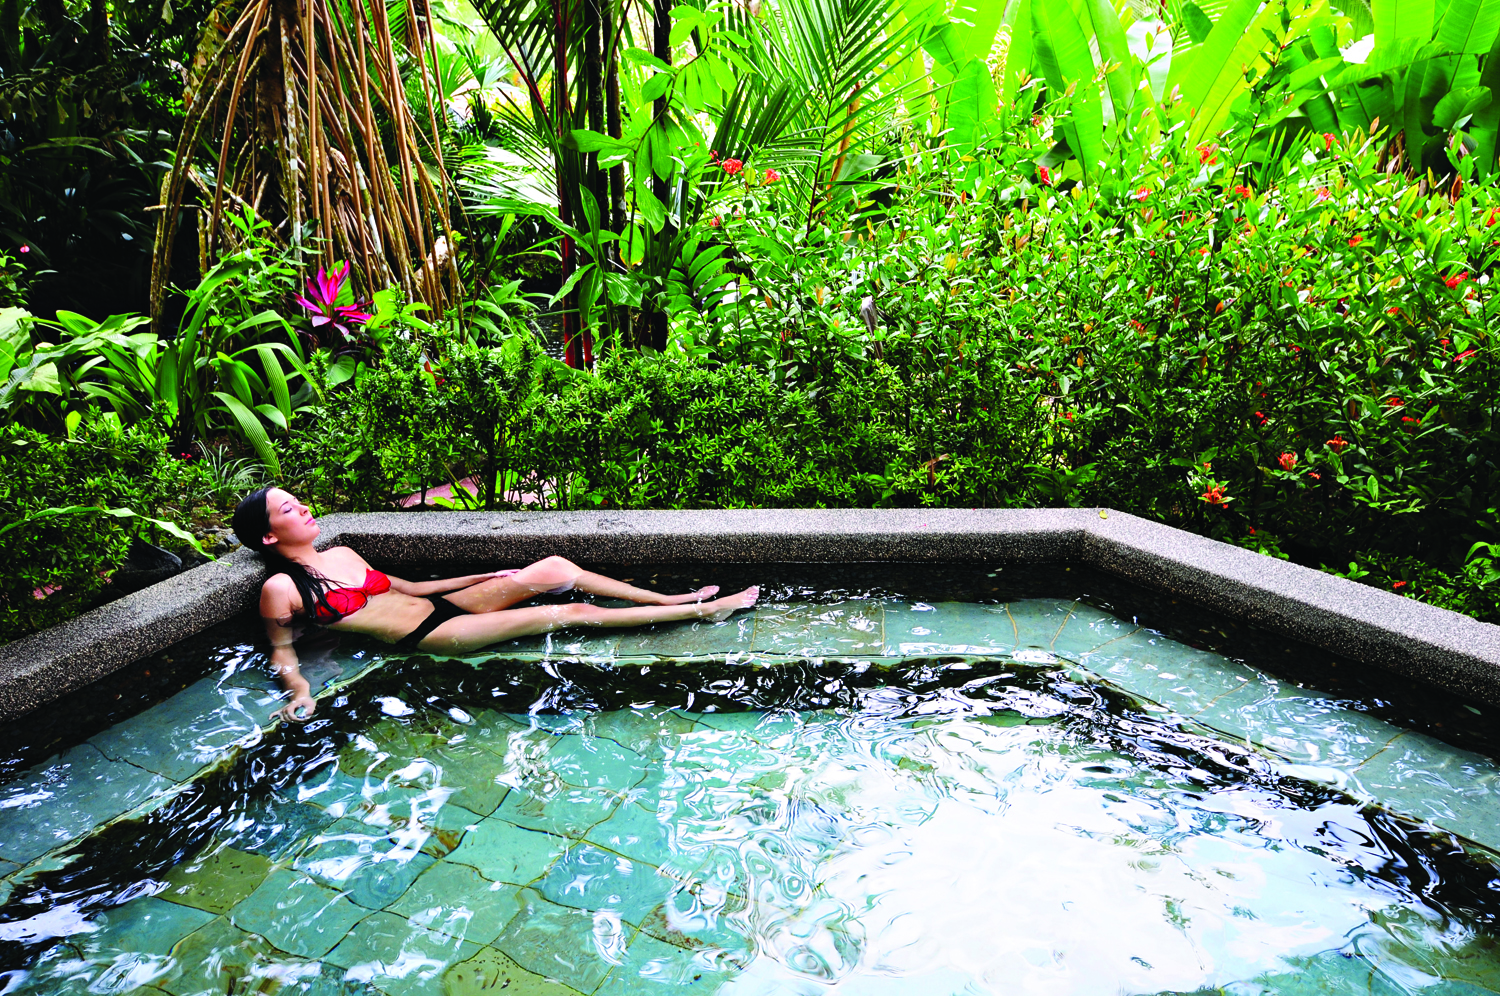 Tabacon Thermal Resort & Spa in Costa Rica offers an outstanding spa and thermal springs experience.